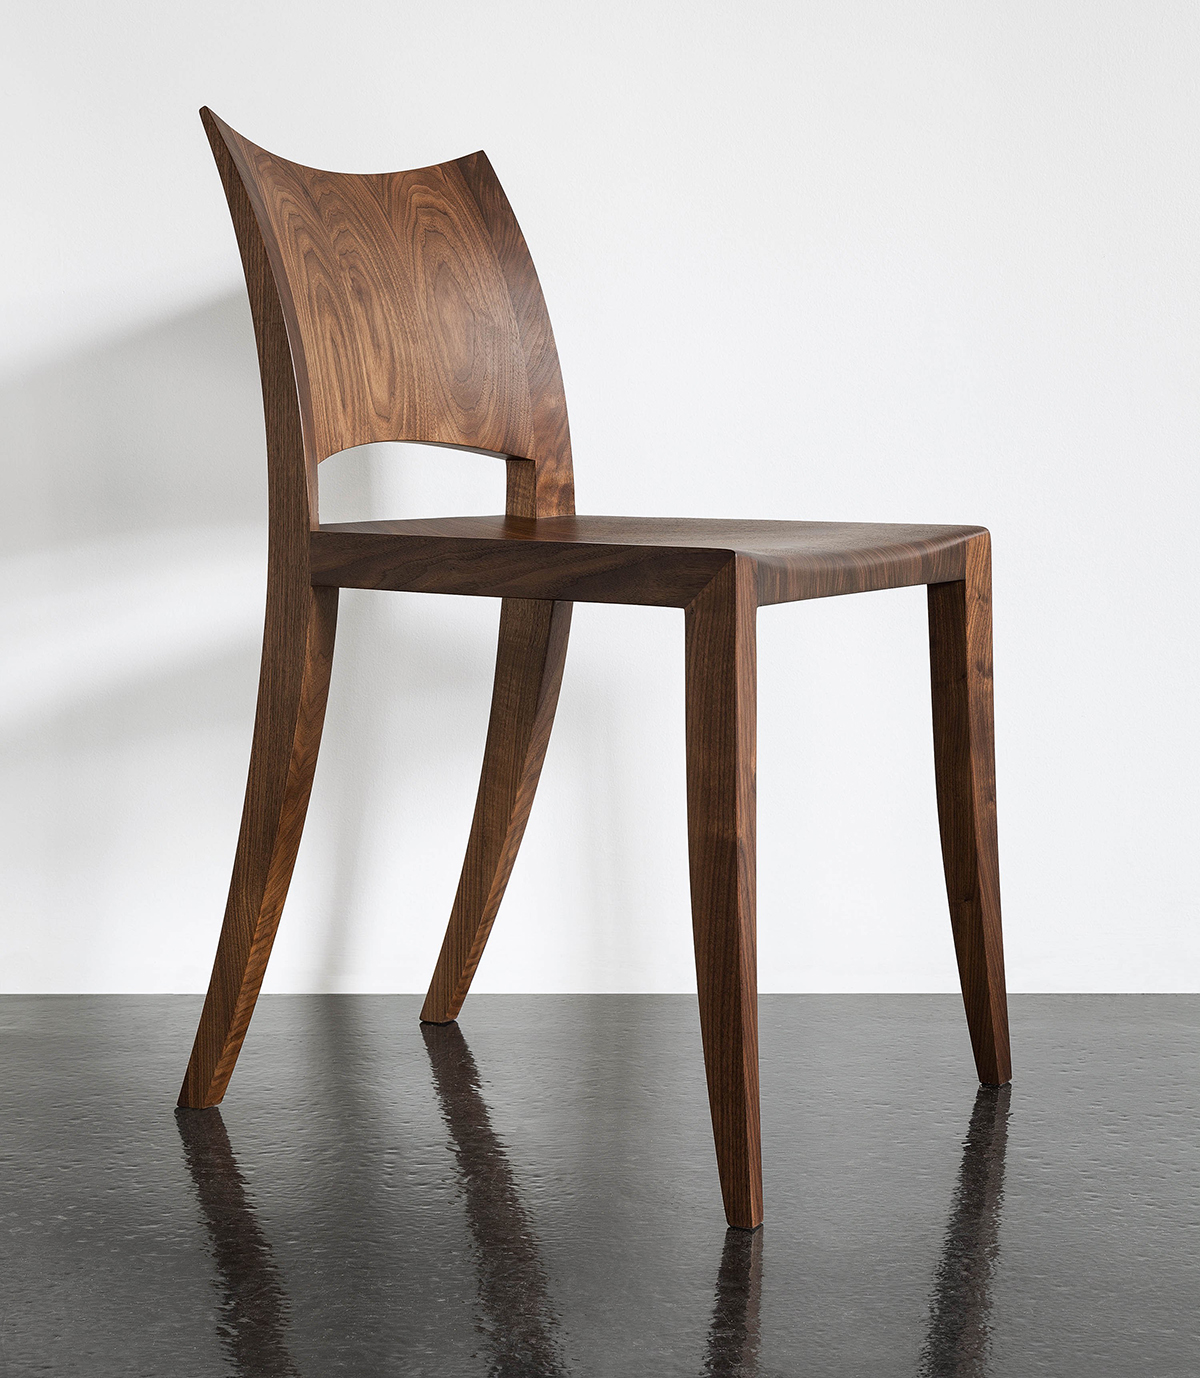 Photo provided by Thos. Moser Cabinetmakers